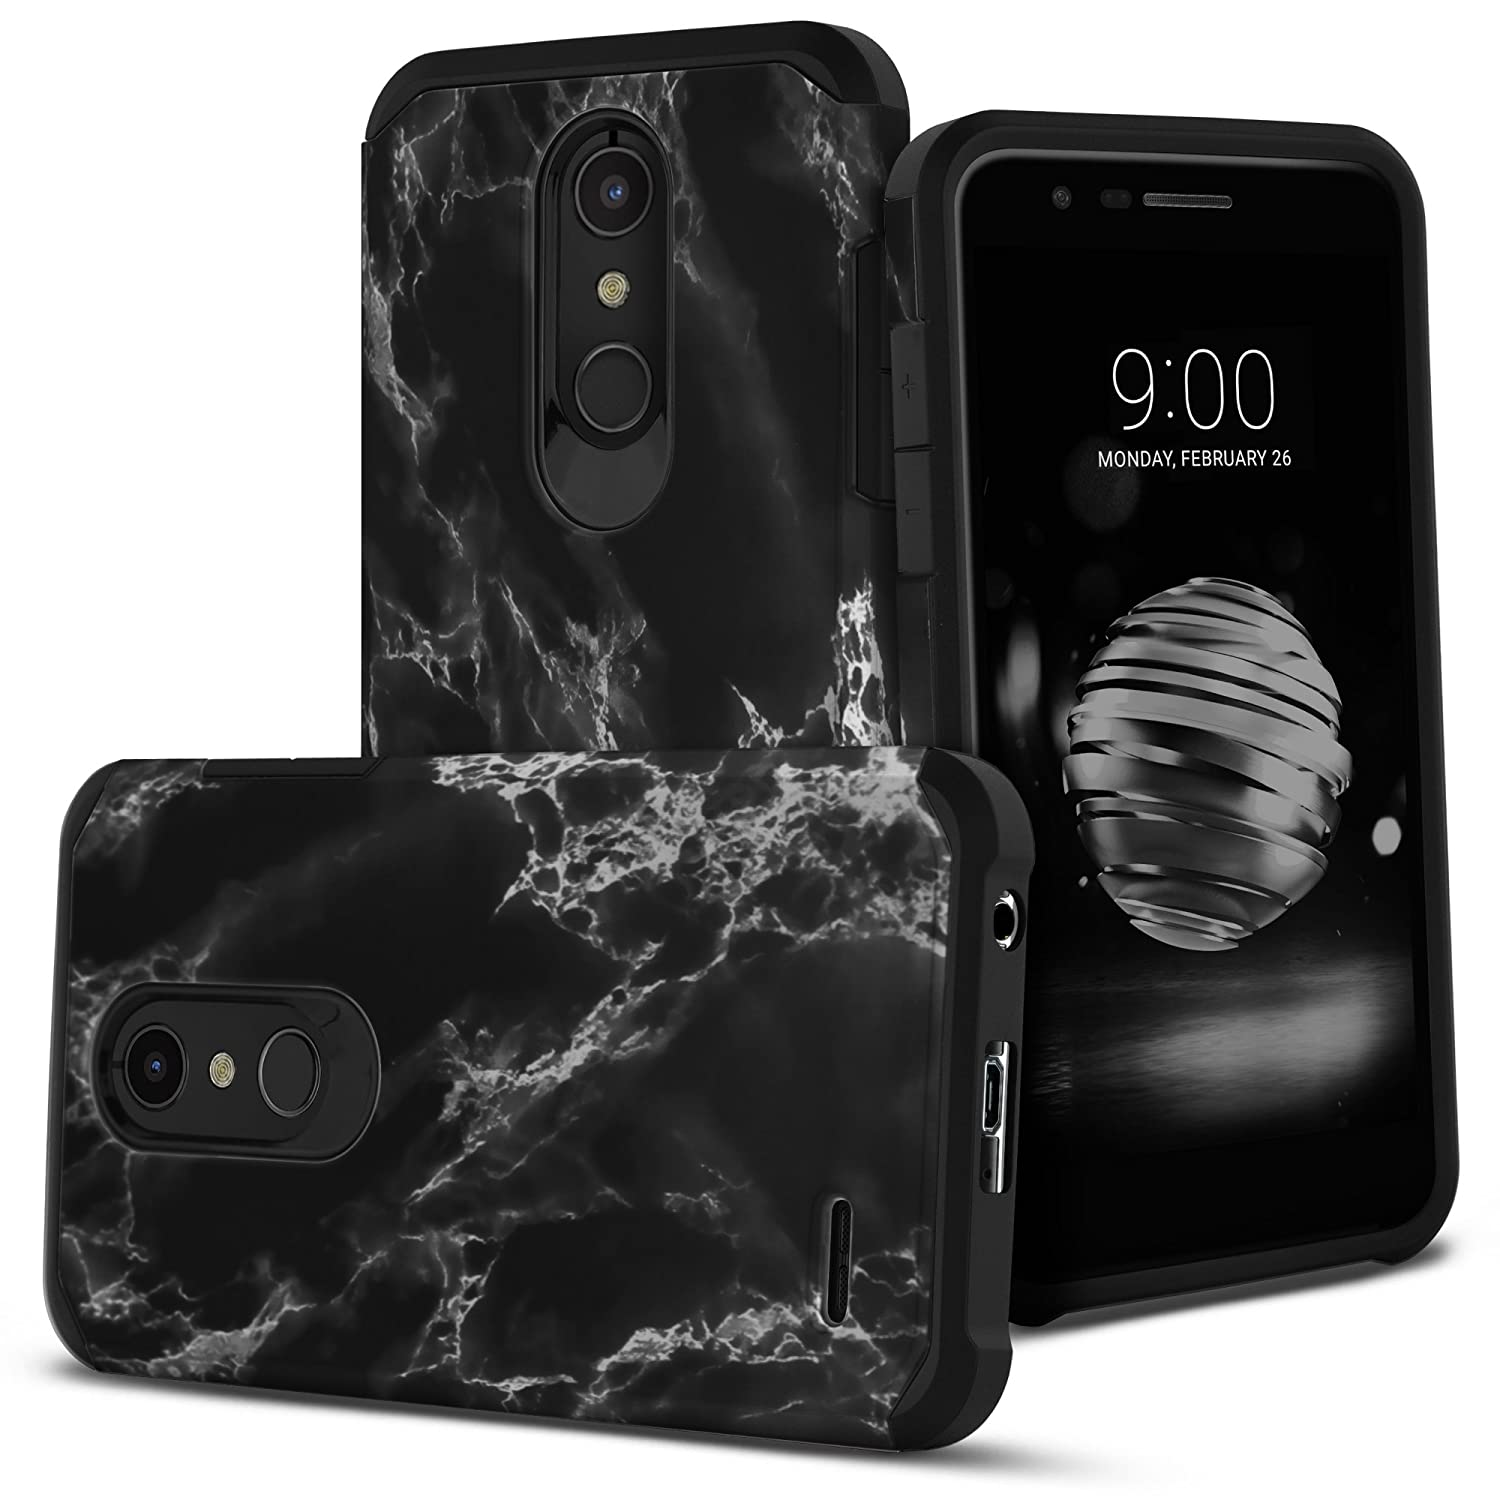 Celljoy Case Compatible with LG K30, LG K10 2018, LG Premier Pro LTE, LG X410 [Liquid Armor] ((Shock Proof)) Slim Impact Protection [Hybrid TPU/Hard Shell] (Gloss Black Marble)